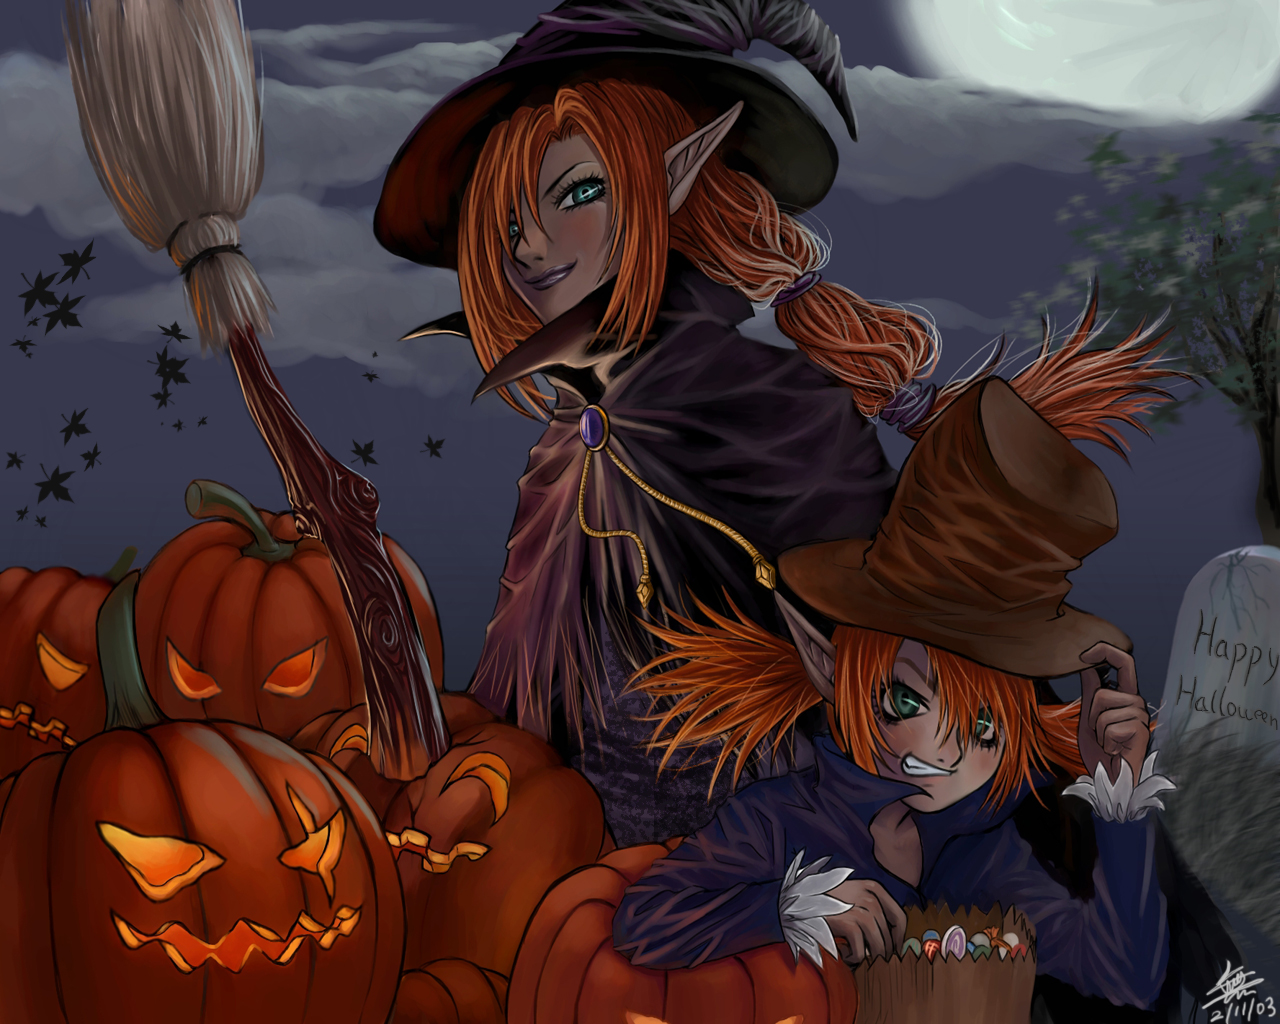 1280x1024 Halloween witches desktop PC and Mac wallpaper 1280x1024